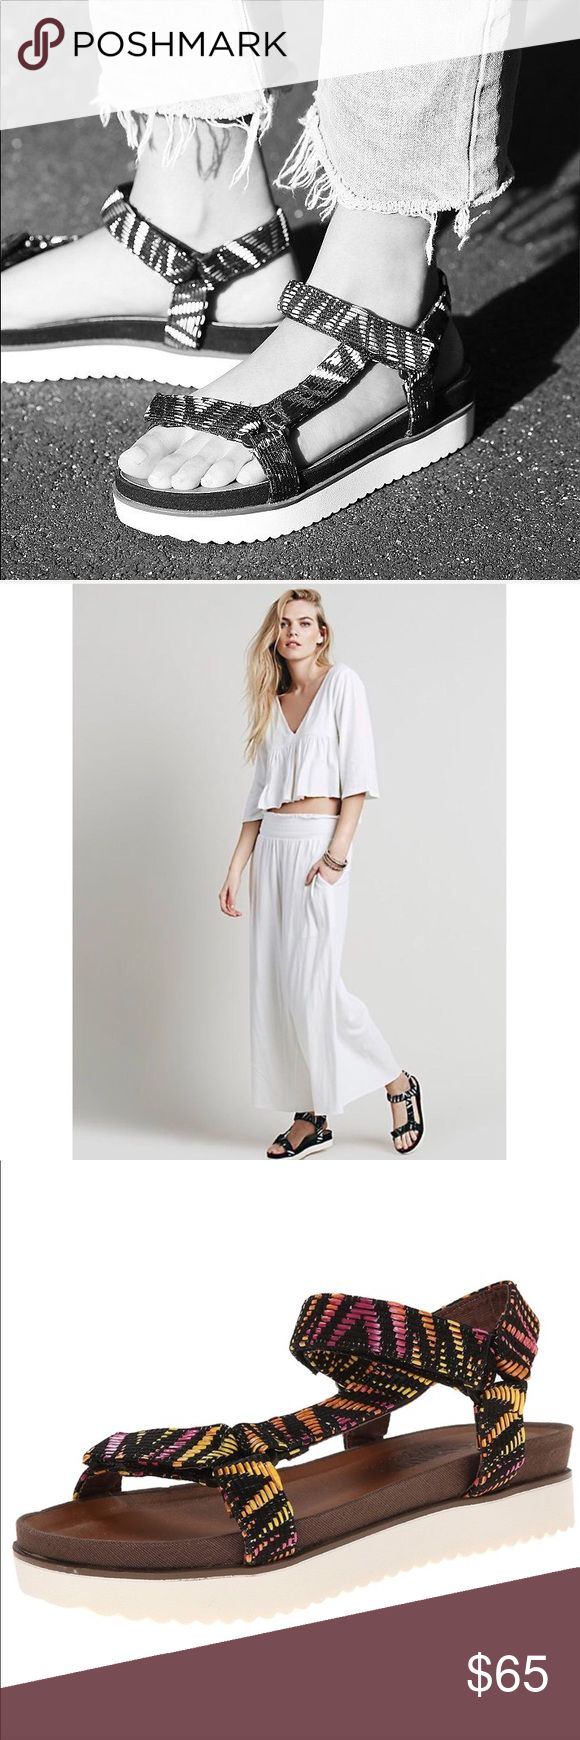 """Strappy Gladiador Sienna Platform Sandal Woven textile upper. Hook and loop closure at ankle. Open toe. Corduroy lining. Cushioned synthetic footbed. Synthetic outsole. Imported. Heel measures approximately 1.5"""" Platform measures approximately 1."""" Matisse X Free People Free People Shoes Sandals"""